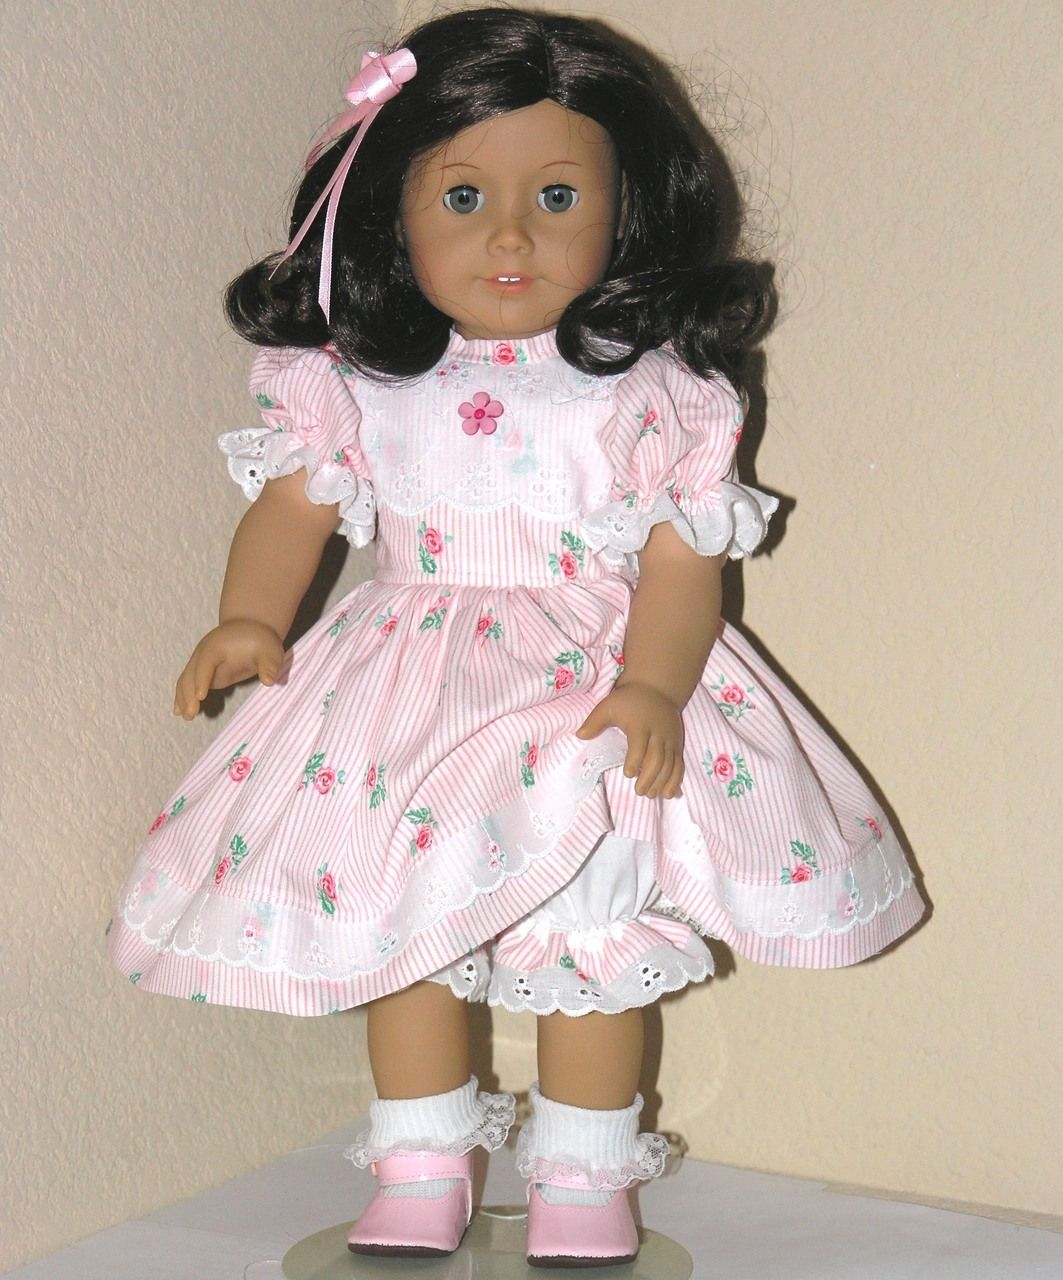 Handmade American Girl 18 inch Dress Kit,Ruthie Pink Rose Stripe